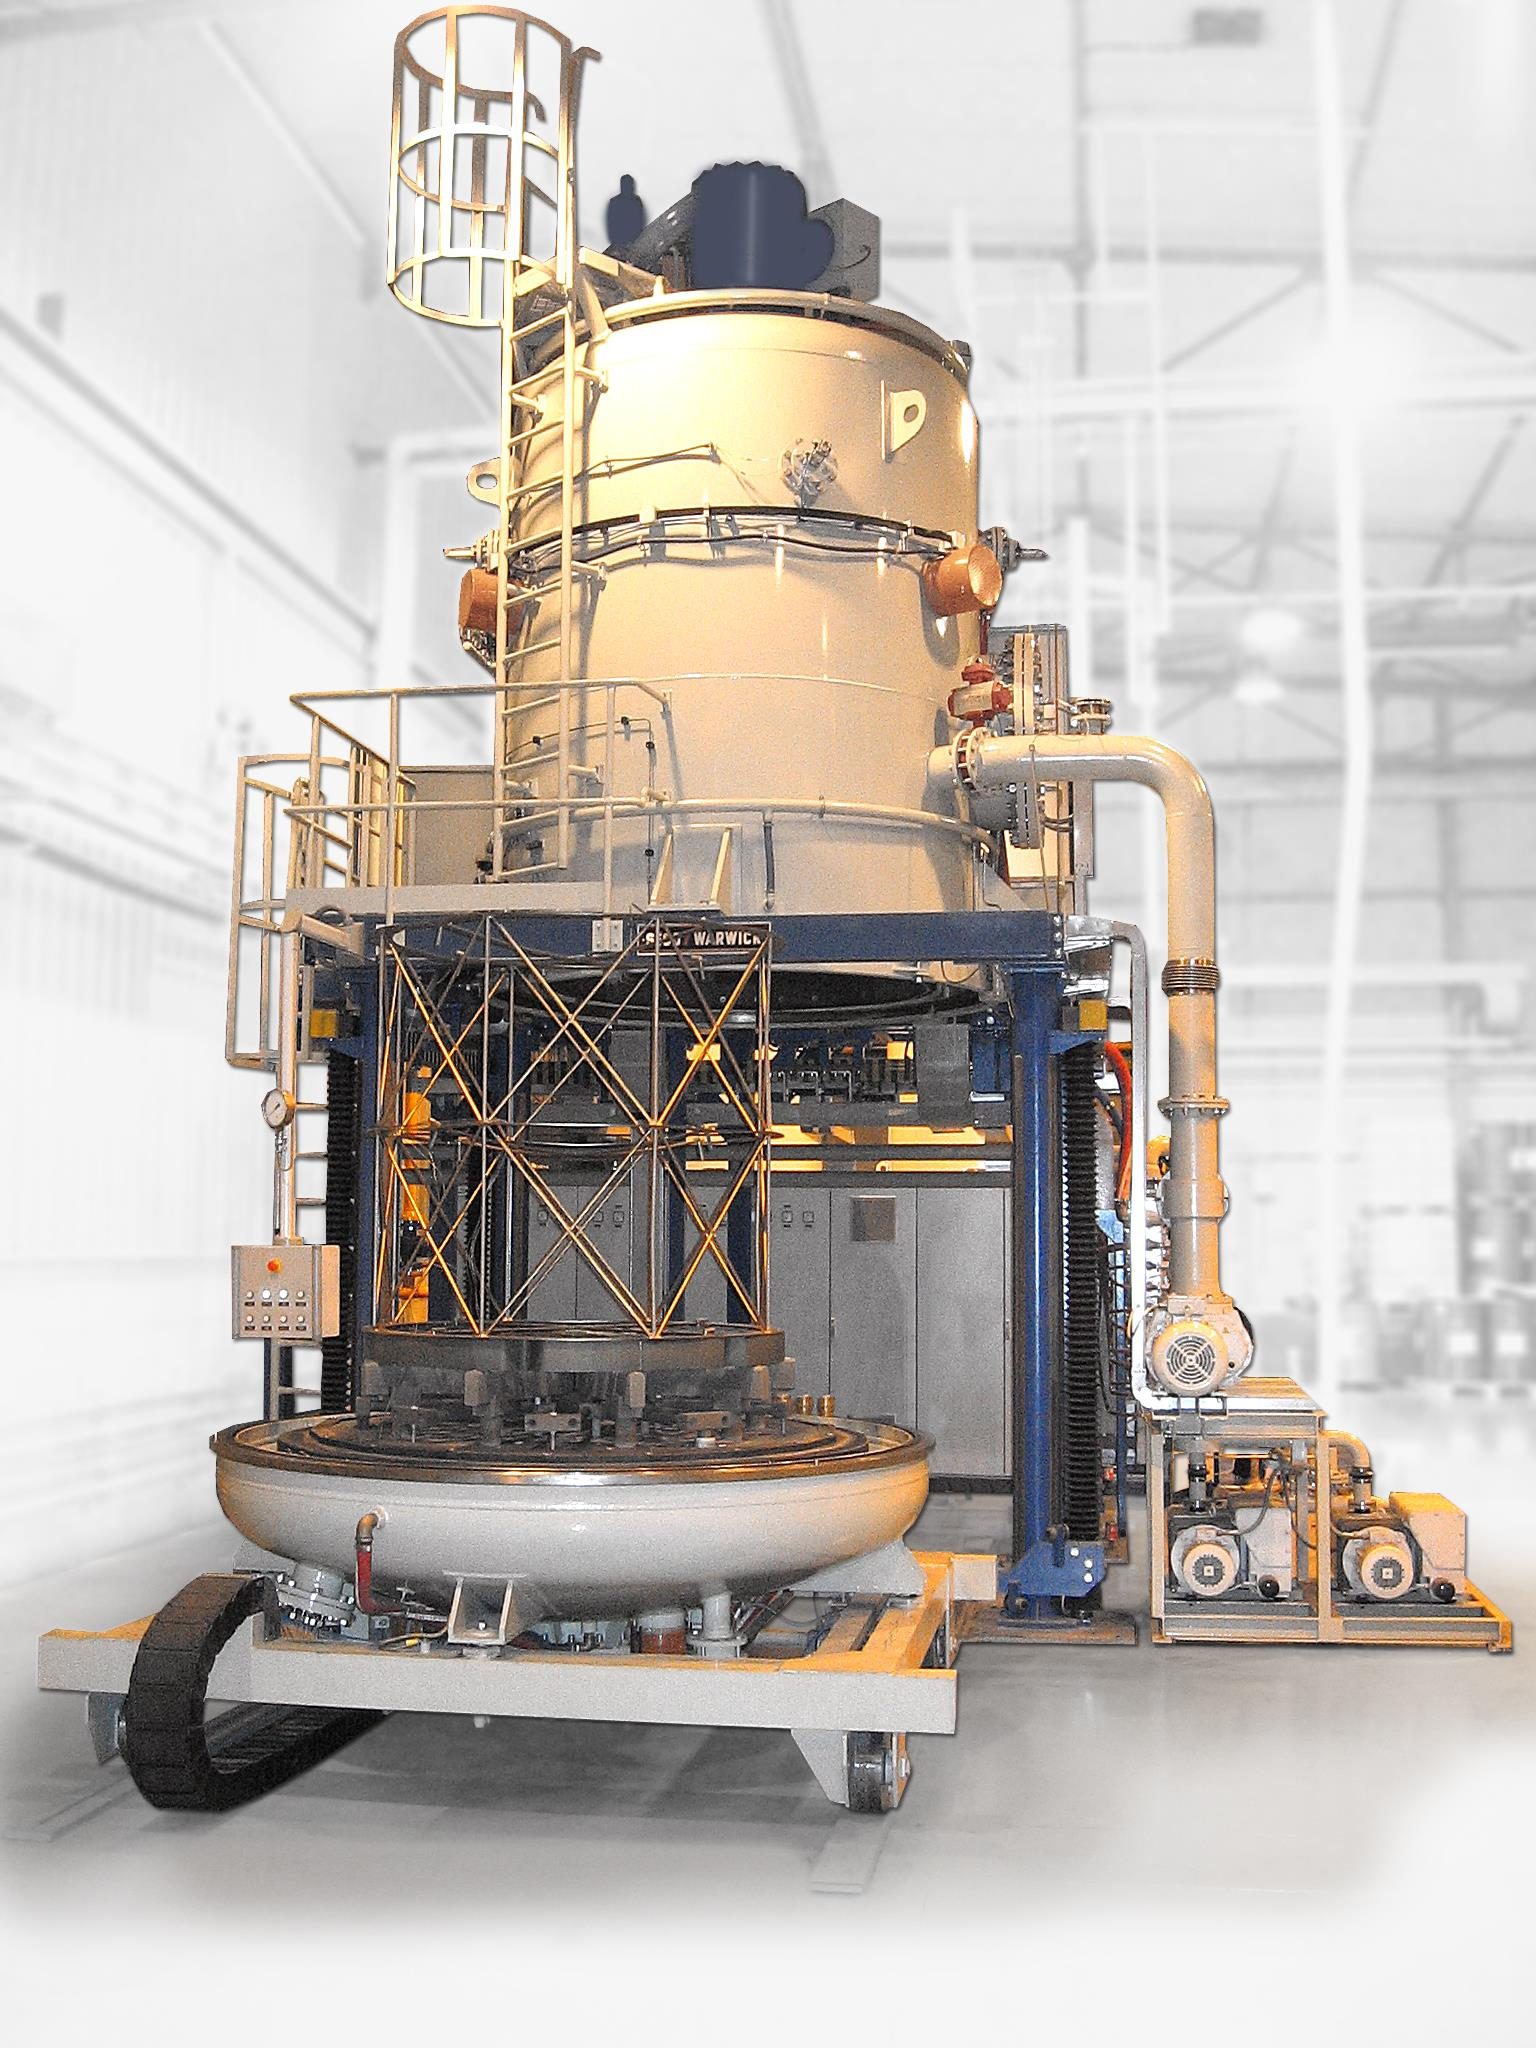 Vacuum Brazing Furnace made by SECOWARWICK ordered by HI TecMetal Group